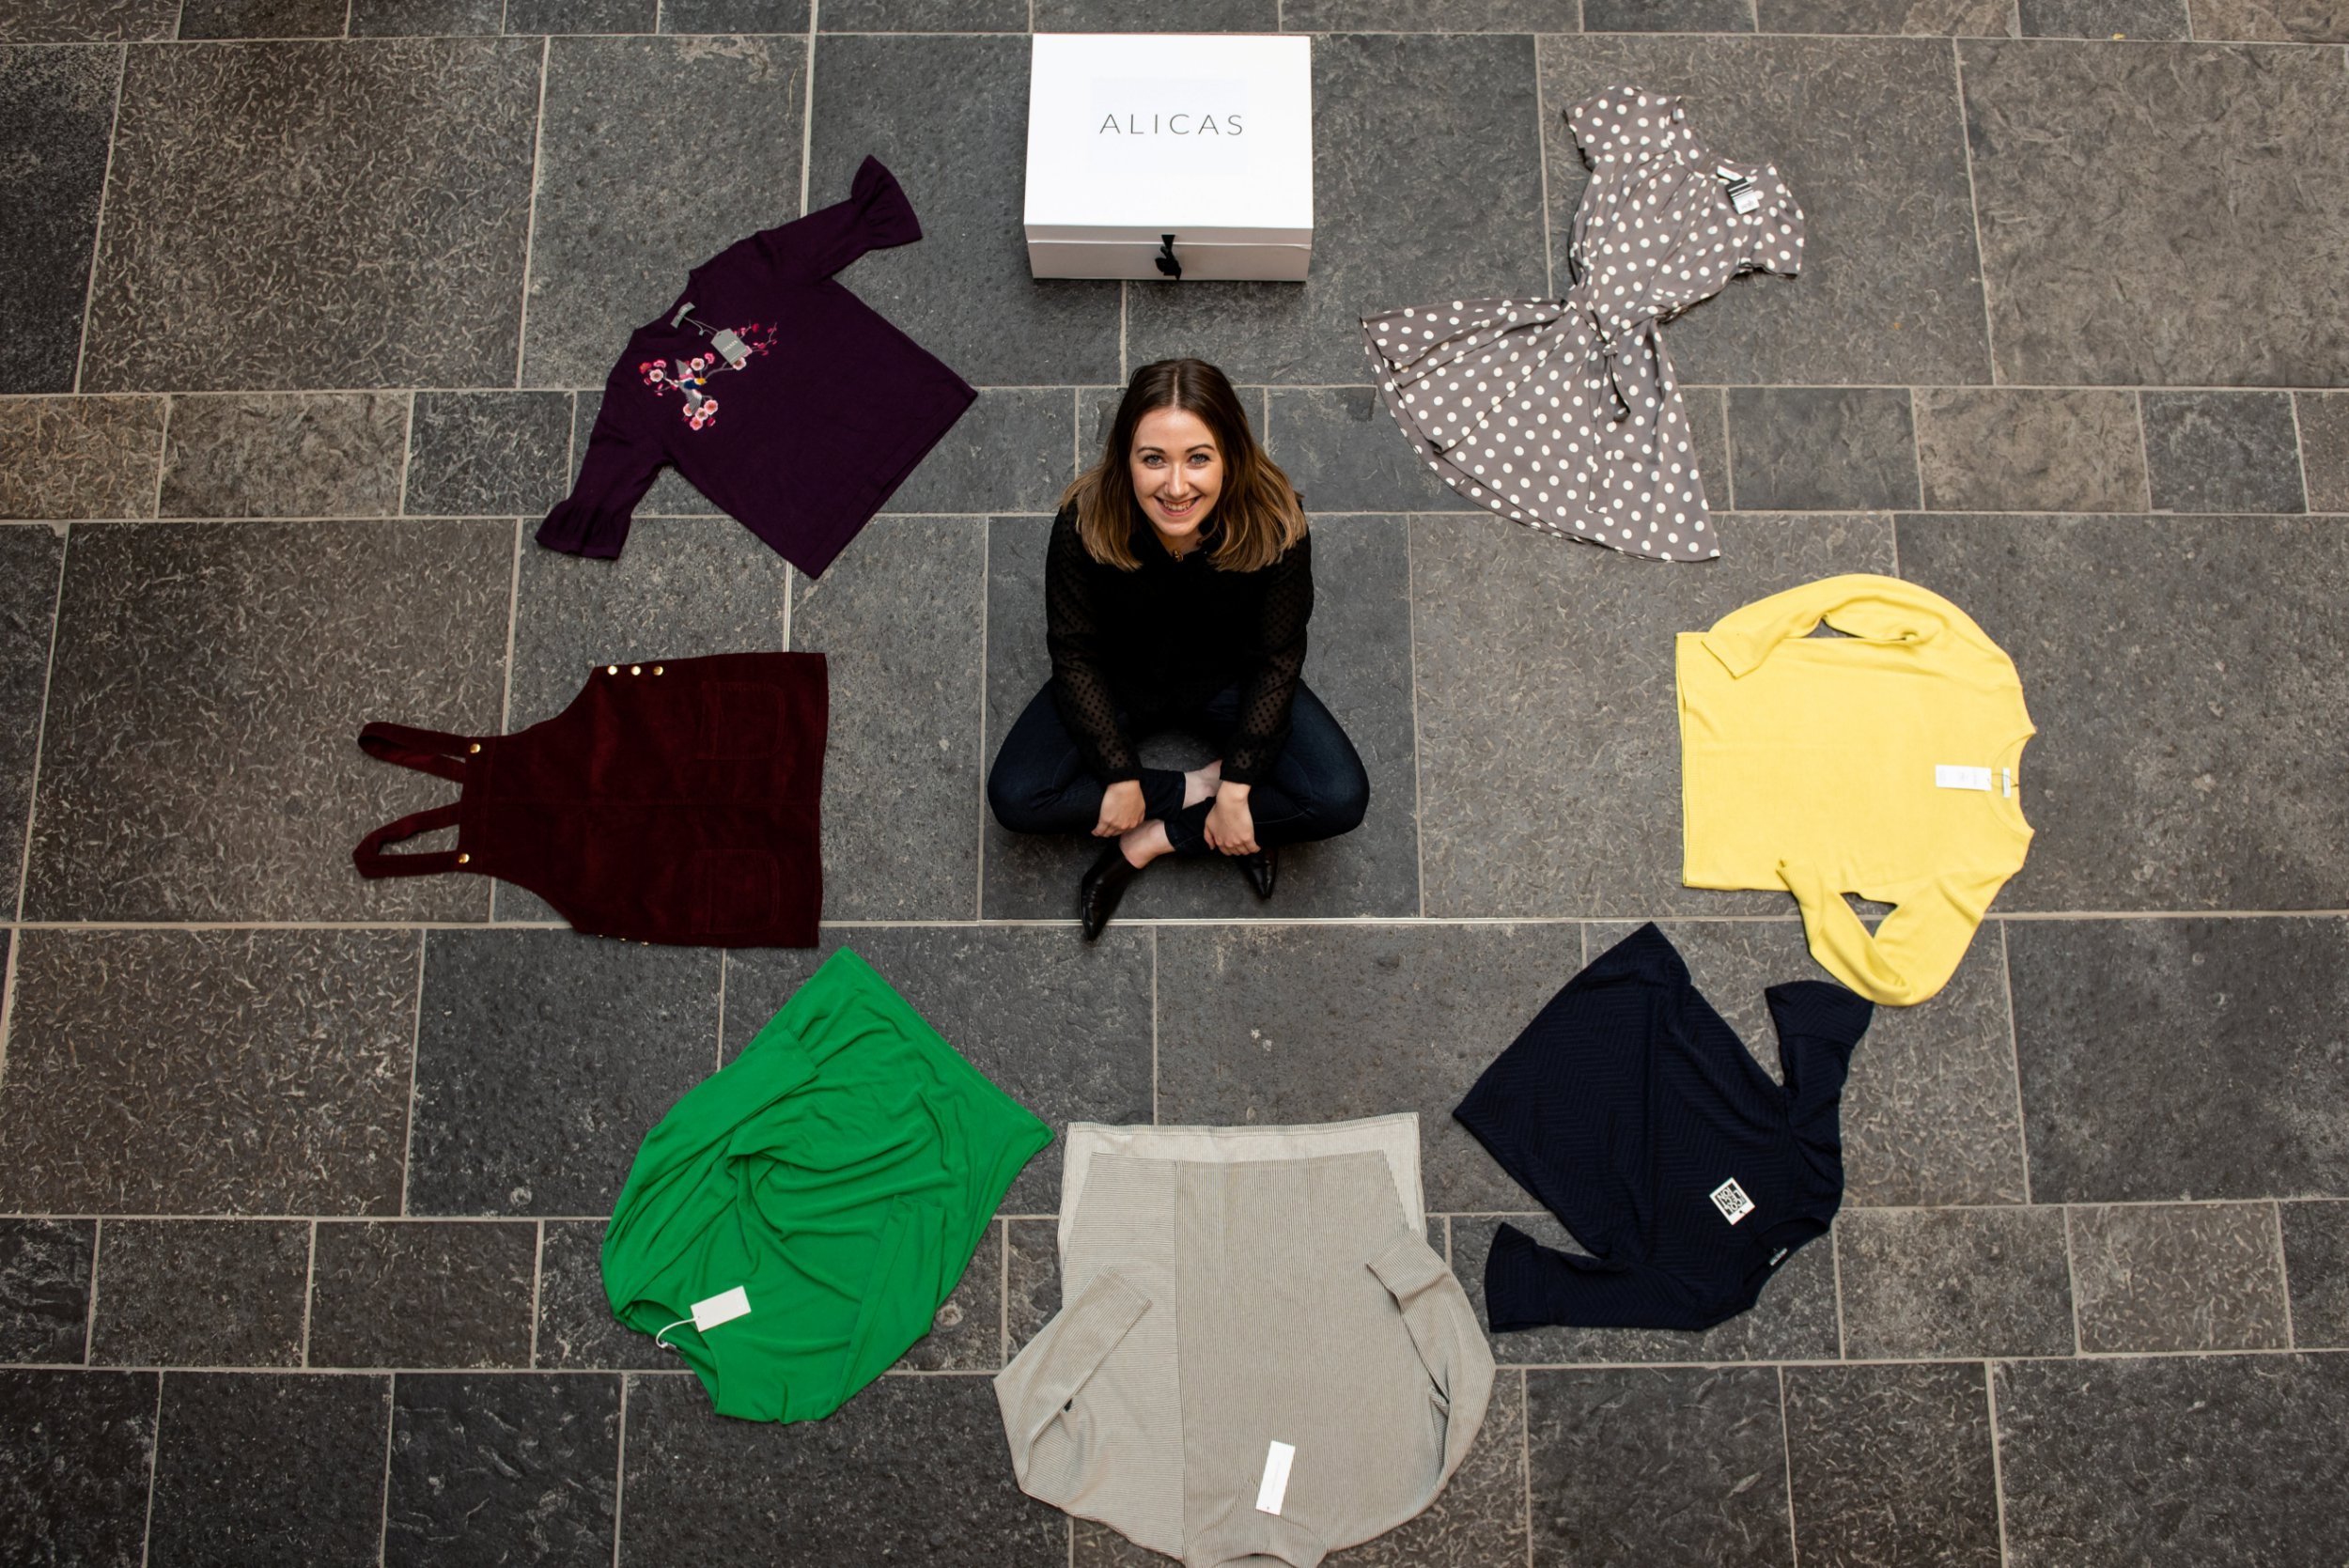 """Rachael Bews a domestic abuse survivor from Ross-shire, Highland, is helping women in need by providing clothing parcels. See SWNS story SWSCclothes; Entrepreneur Rachael Bews is seeking to tackle clothing crisis by helping women escaping abusive and violent relationships to maintain their """"dignity, identity and confidence"""". The 26-year-old from Ross-shire in the Scottish Highlands was inspired to set up her charity Alicas after working with a woman who fled an abusive partner, and following her own experience of a violent relationship last year. Rachael, a business, management and marketing graduate, said: ?When I was 18 I worked with a wonderful woman called Ali who fled to Inverness with her three kids from an abusive partner, with only the clothes on their backs. majestic animal."""